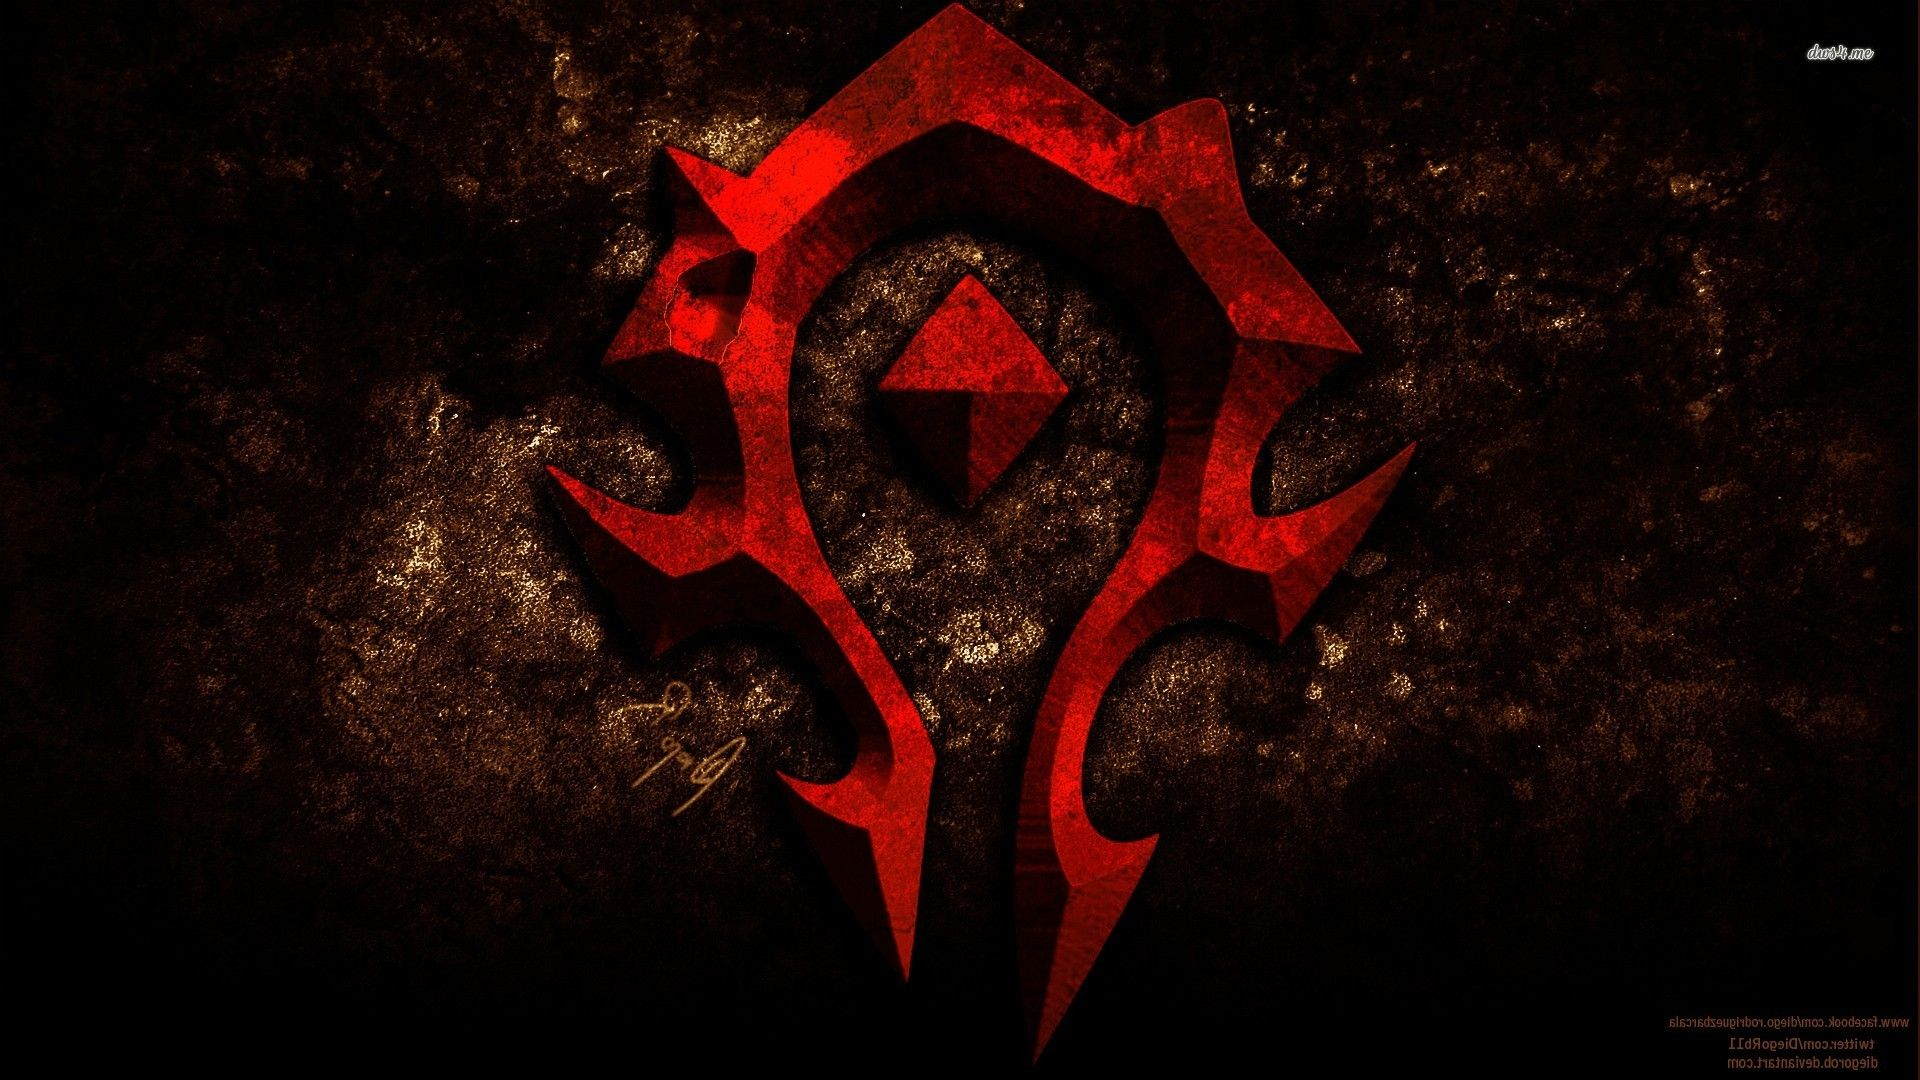 Horde World Of Warcraft Hd Wallpaper Planos De Fundo Fundos